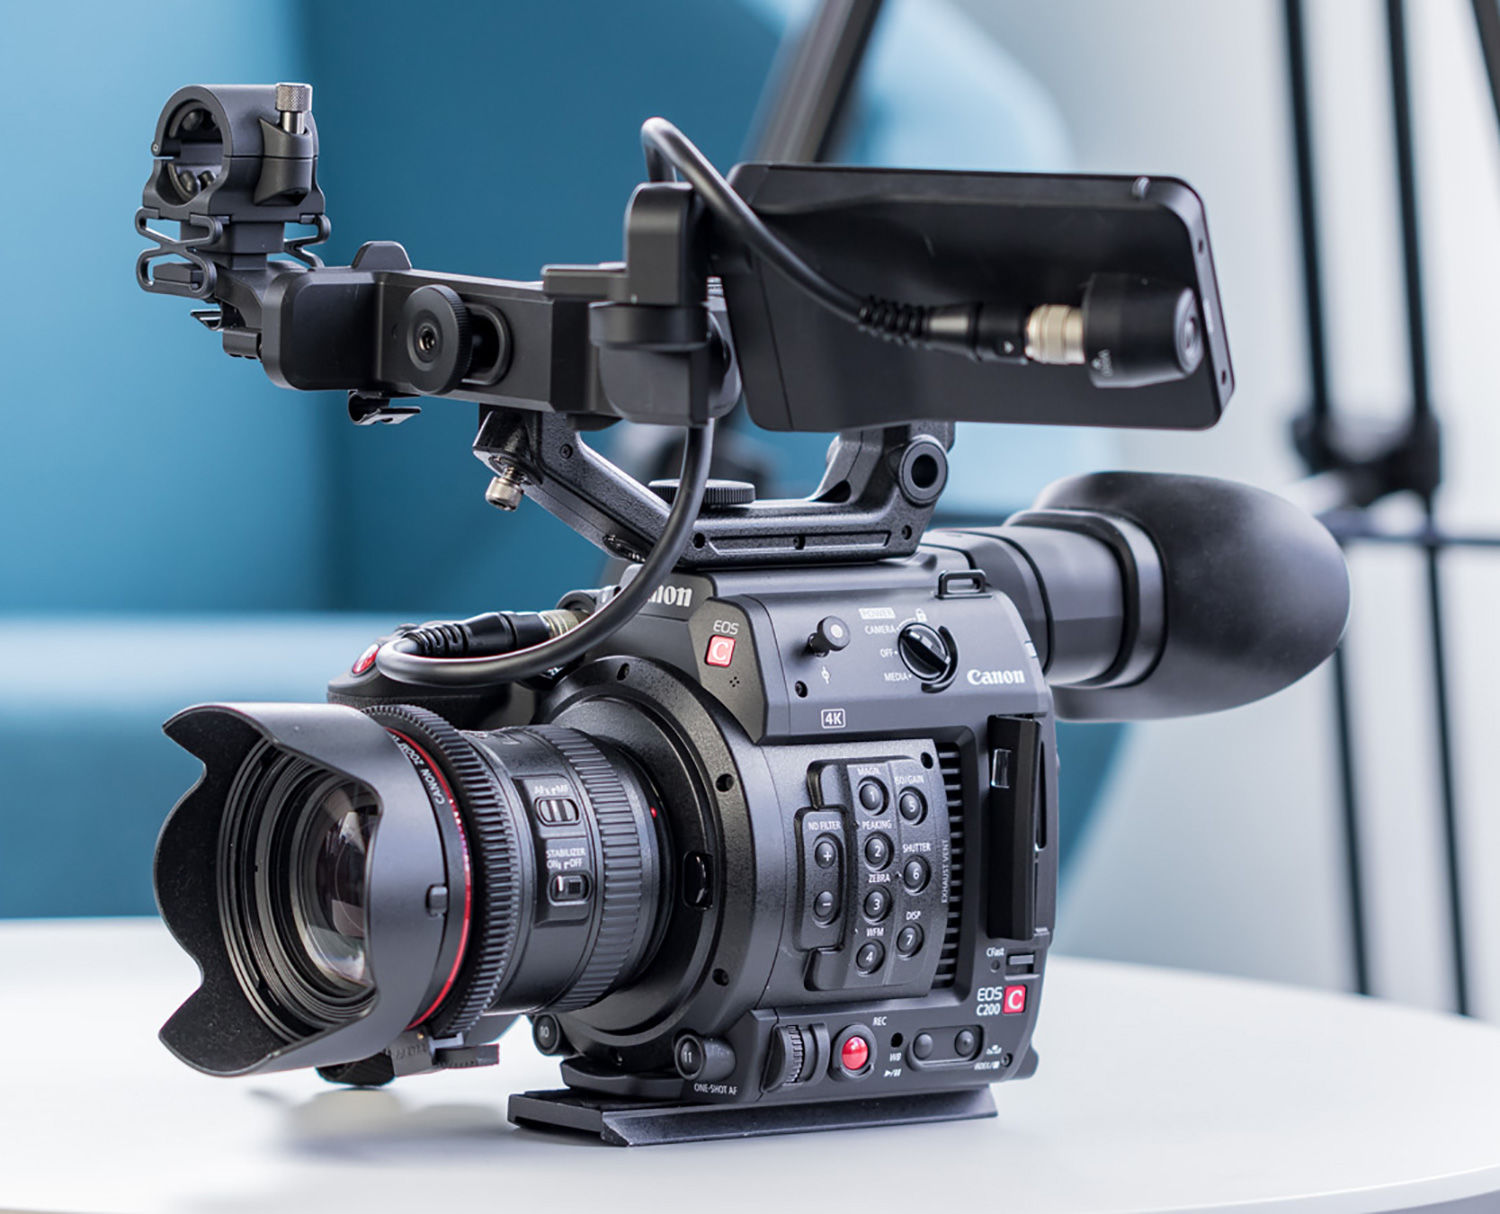 Canon C200 review - Review - Digital Arts